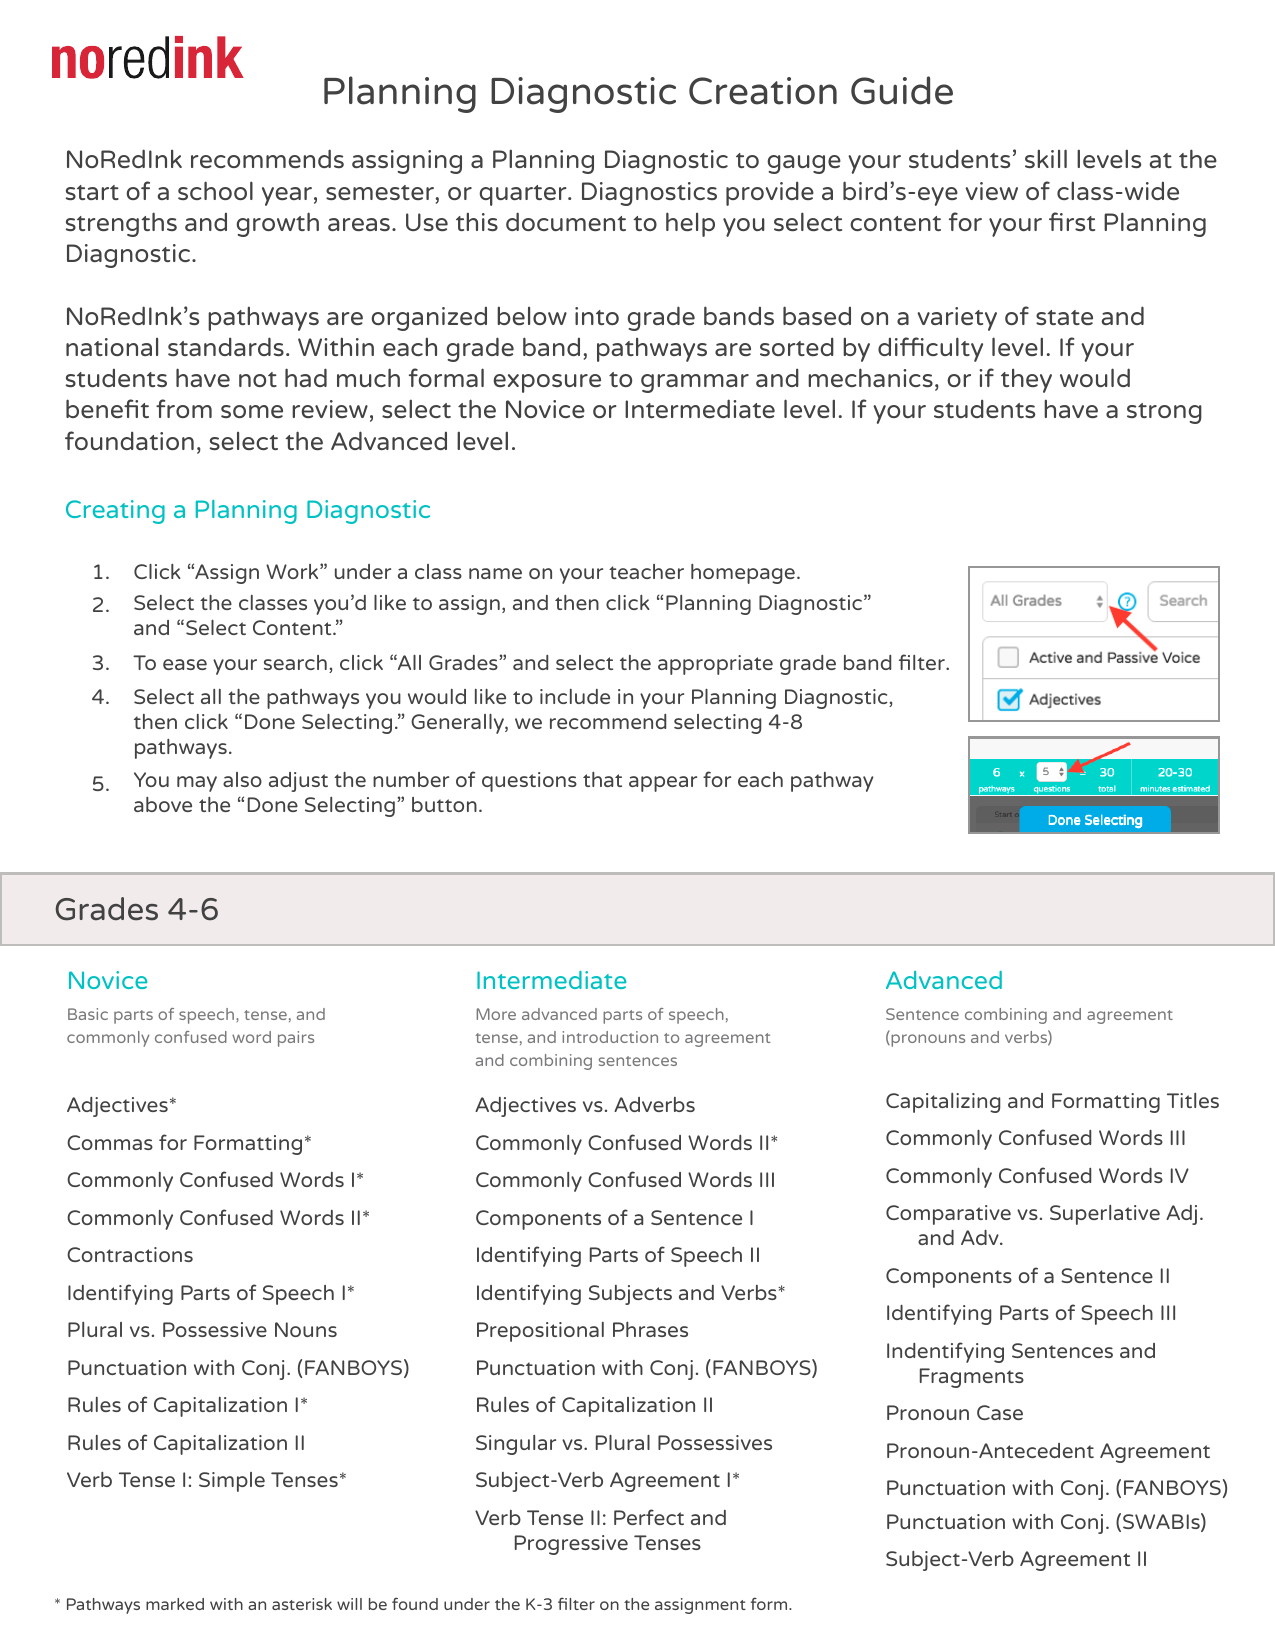 Noredink Planning Diagnostic Creation Guide